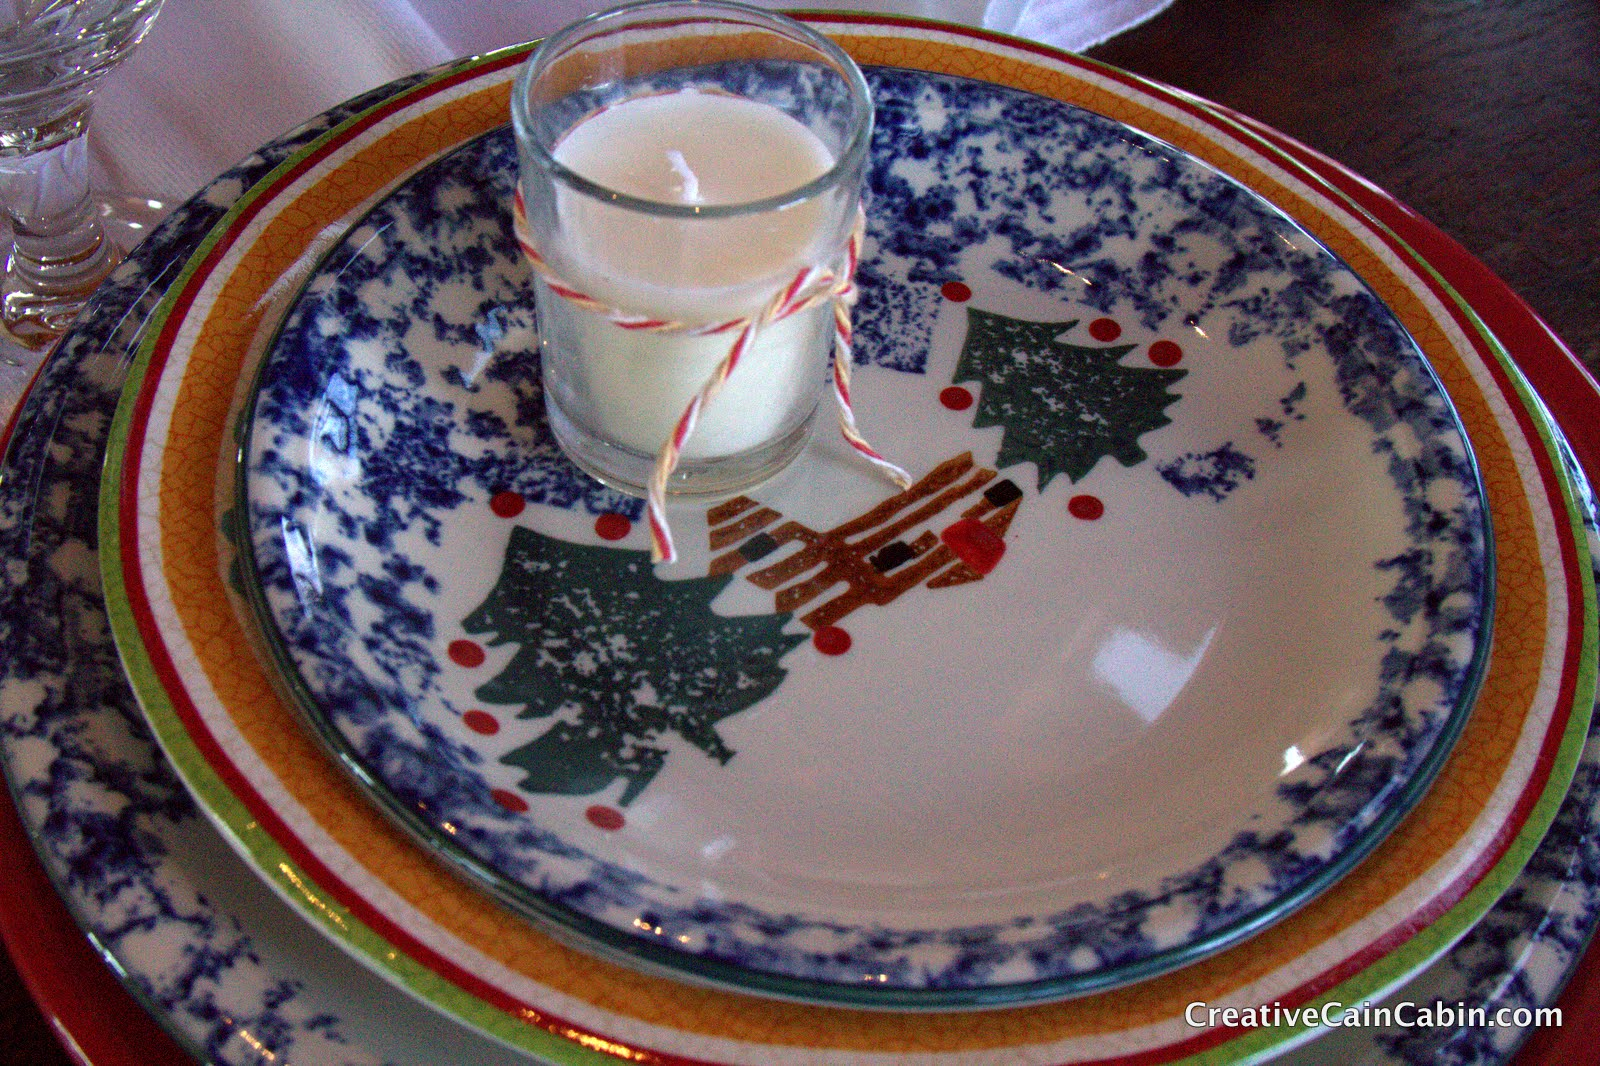 Delicieux Hereu0027s A Closer Shot Of The Dishes, They Are A Log Cabin Pattern That I  Have Had For Years And Use Them Every Christmas Season.